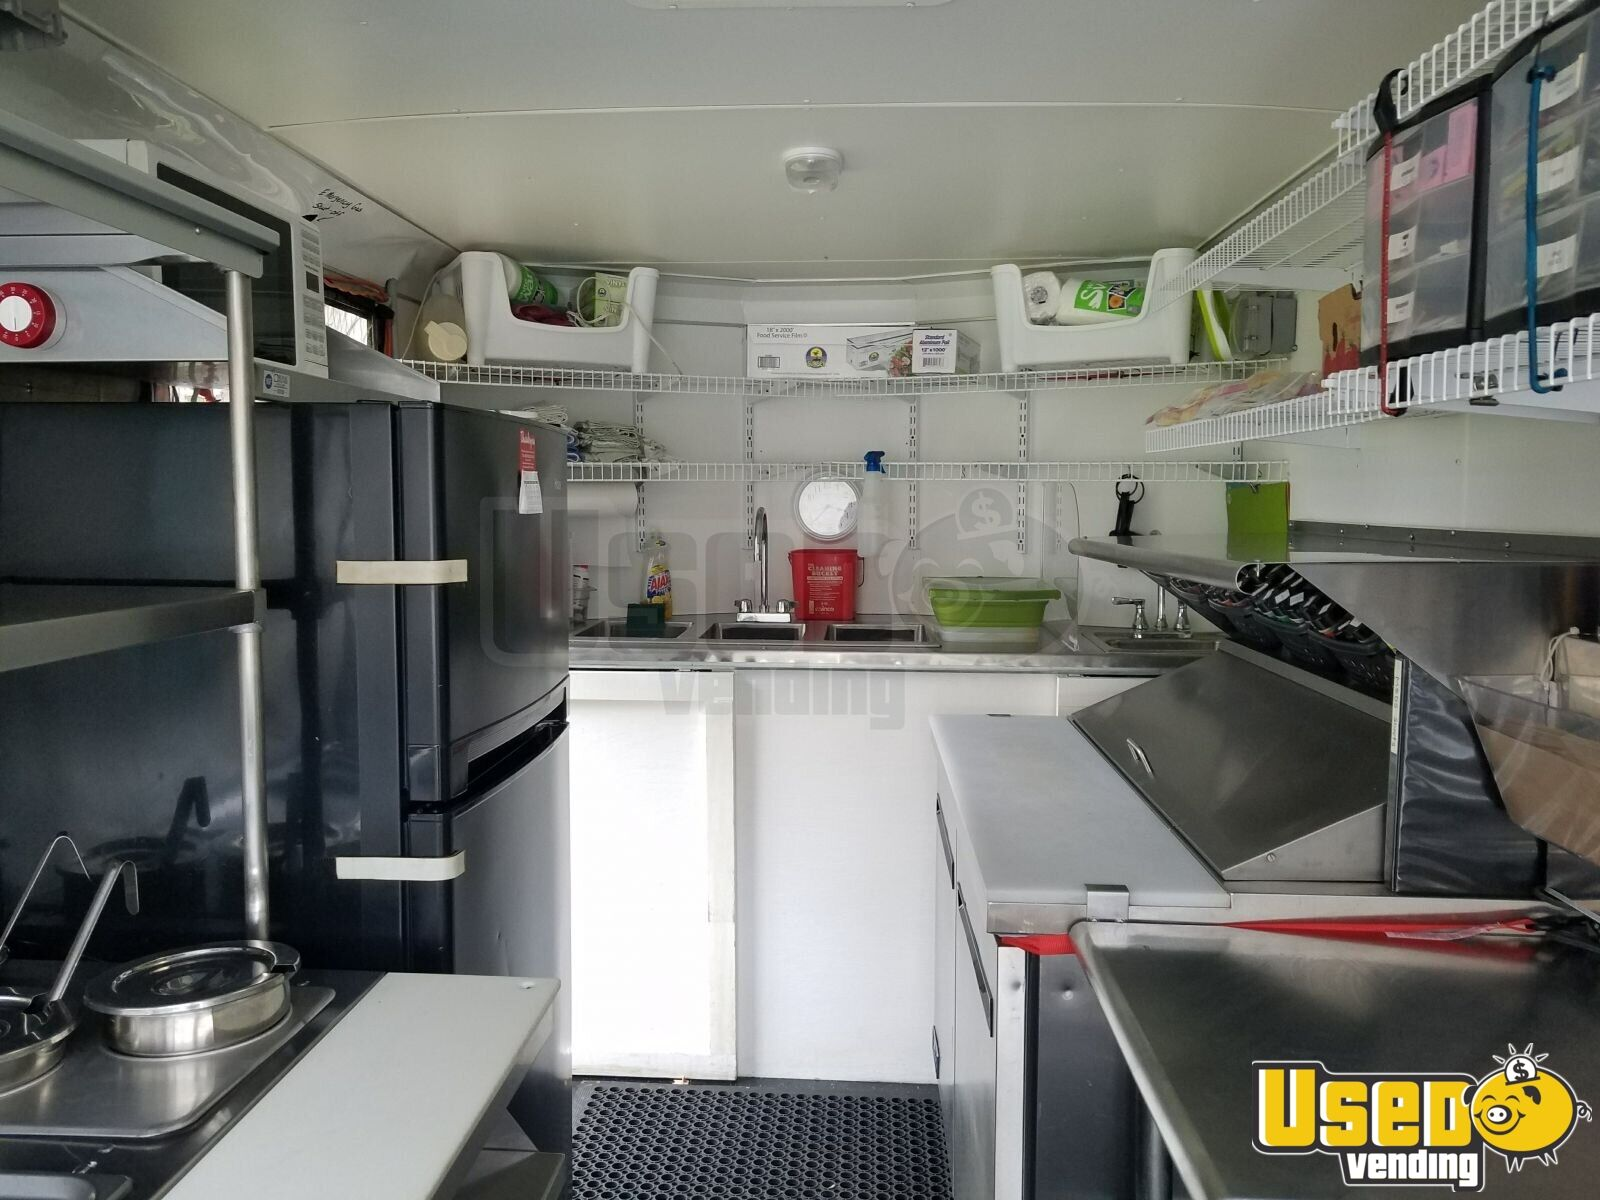 2014 Haulmark All-purpose Food Trailer Exterior Customer Counter Connecticut for Sale - 5